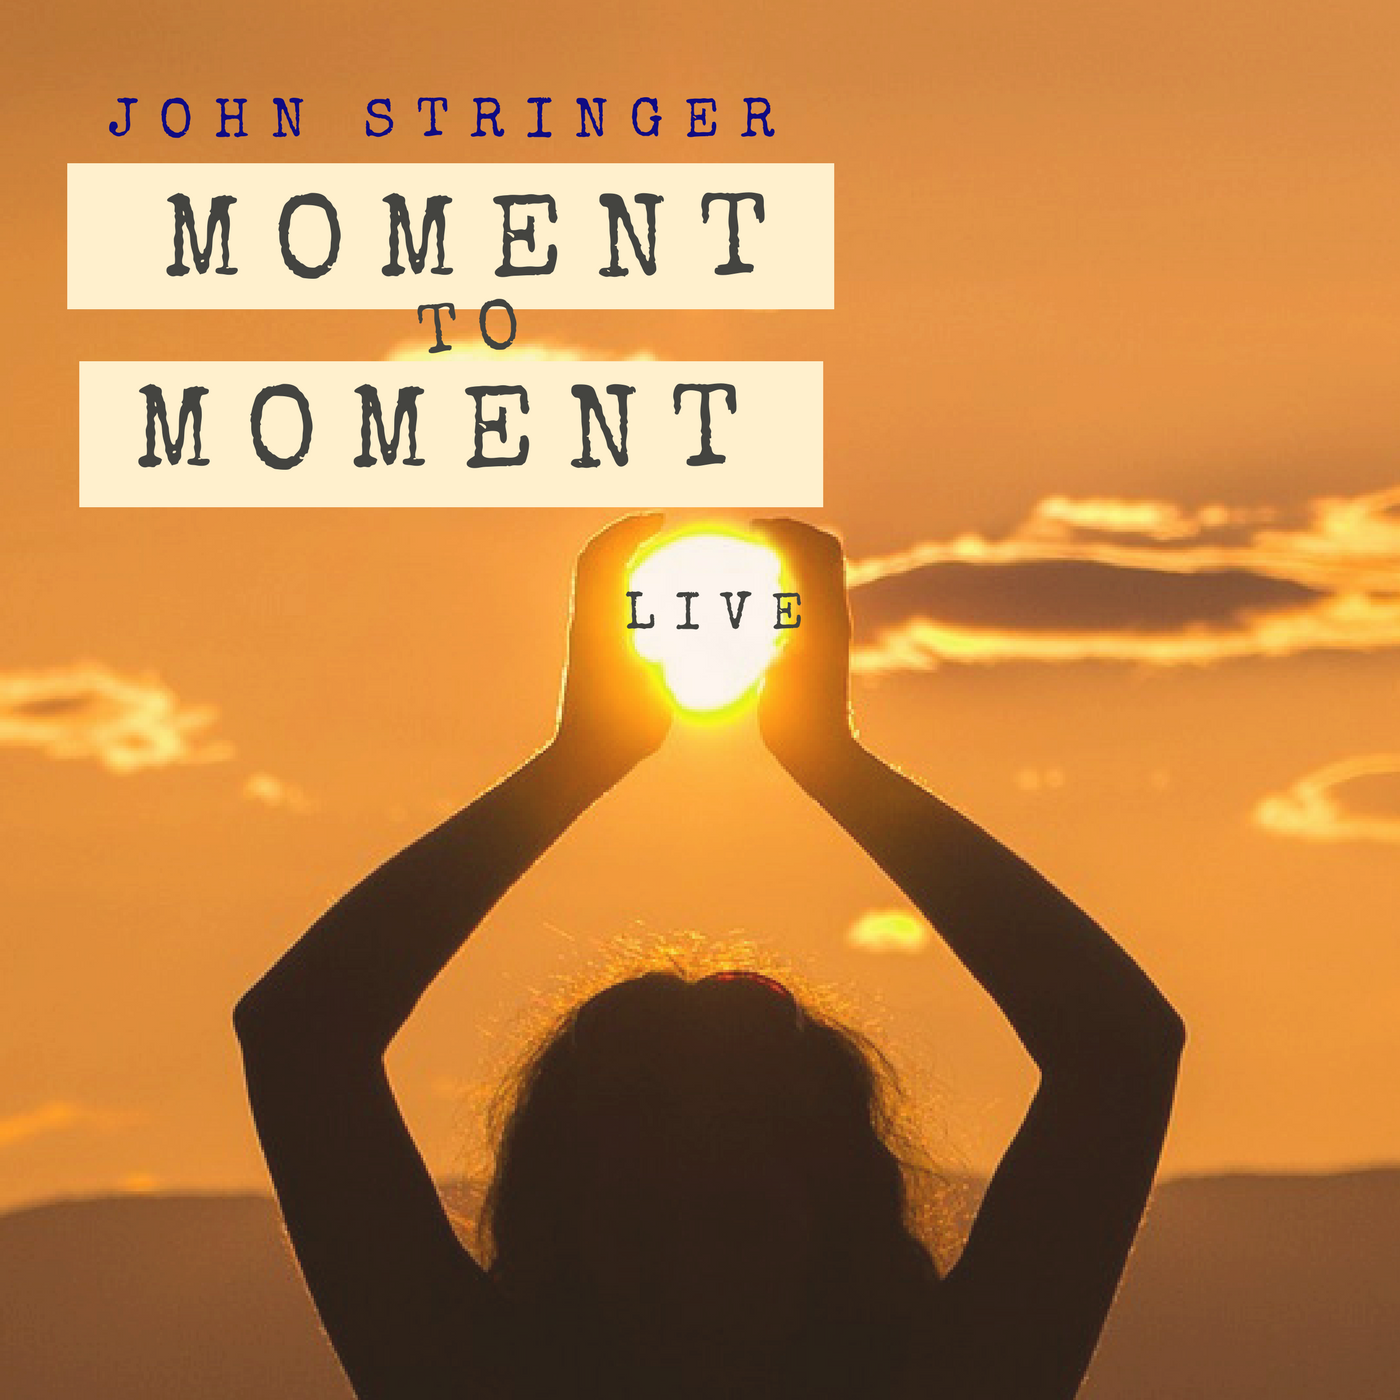 Moment to Moment (Live) Digital CD